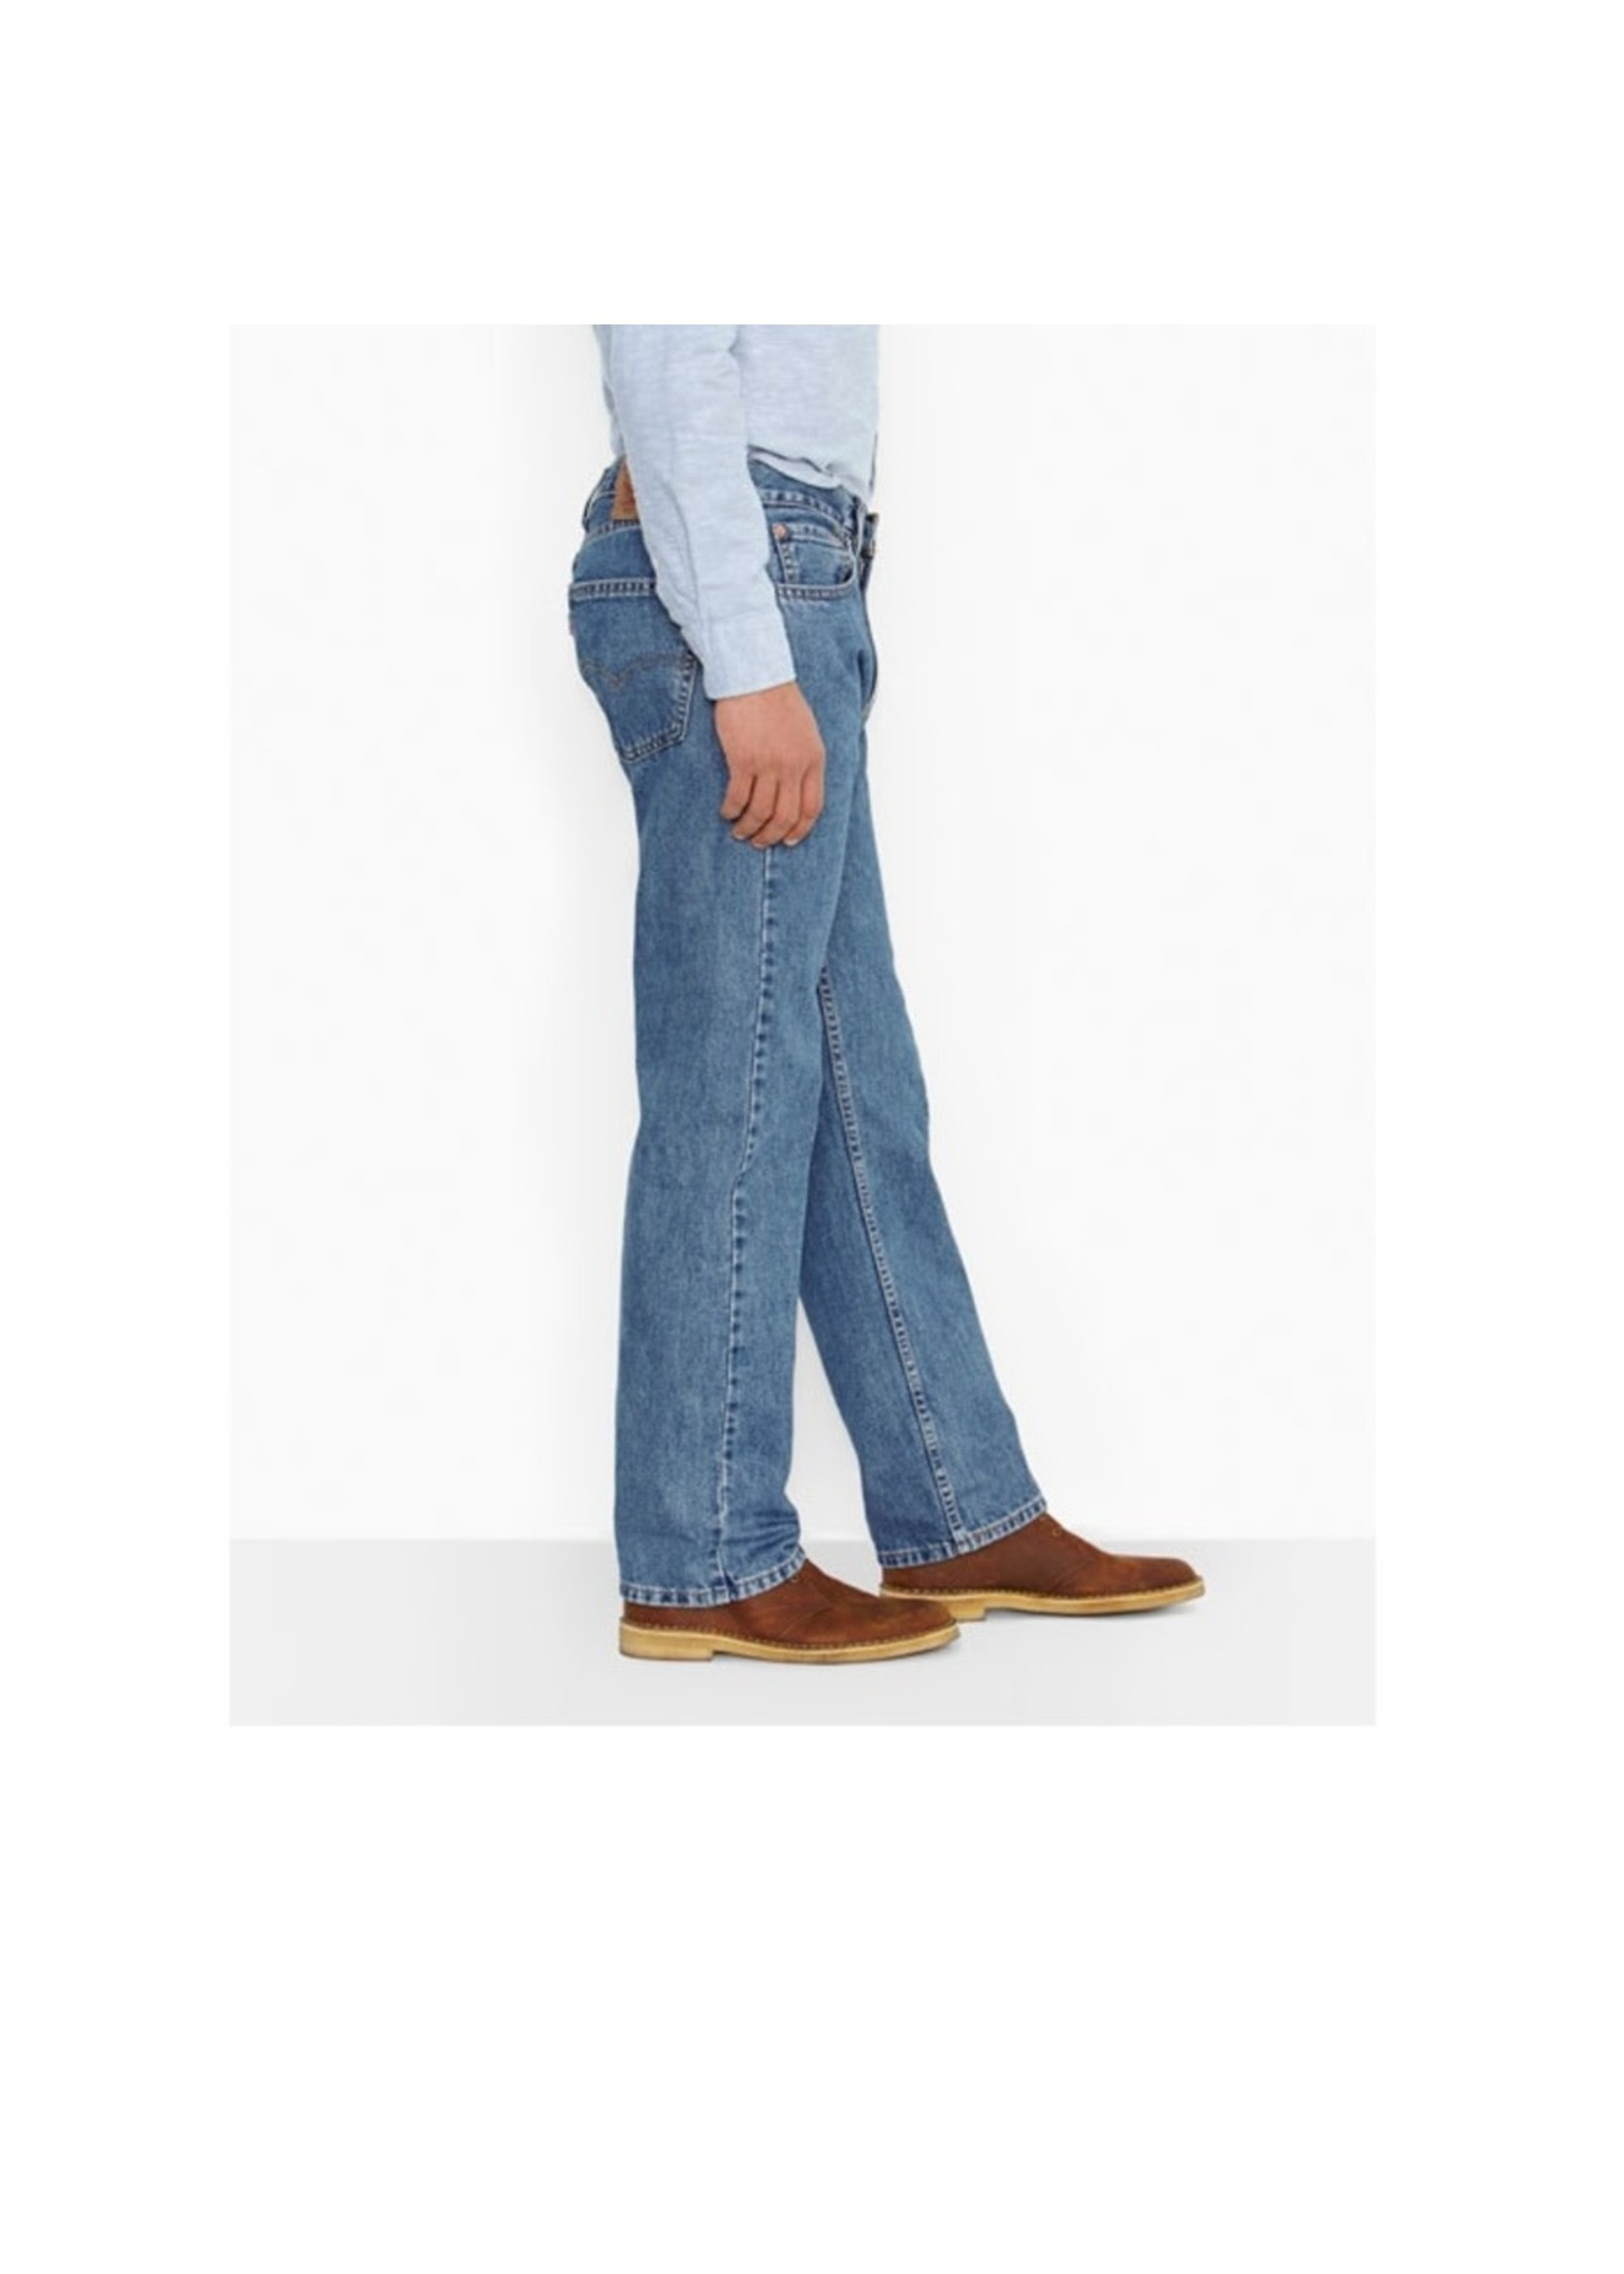 Levi Strauss 505 Regular Fit